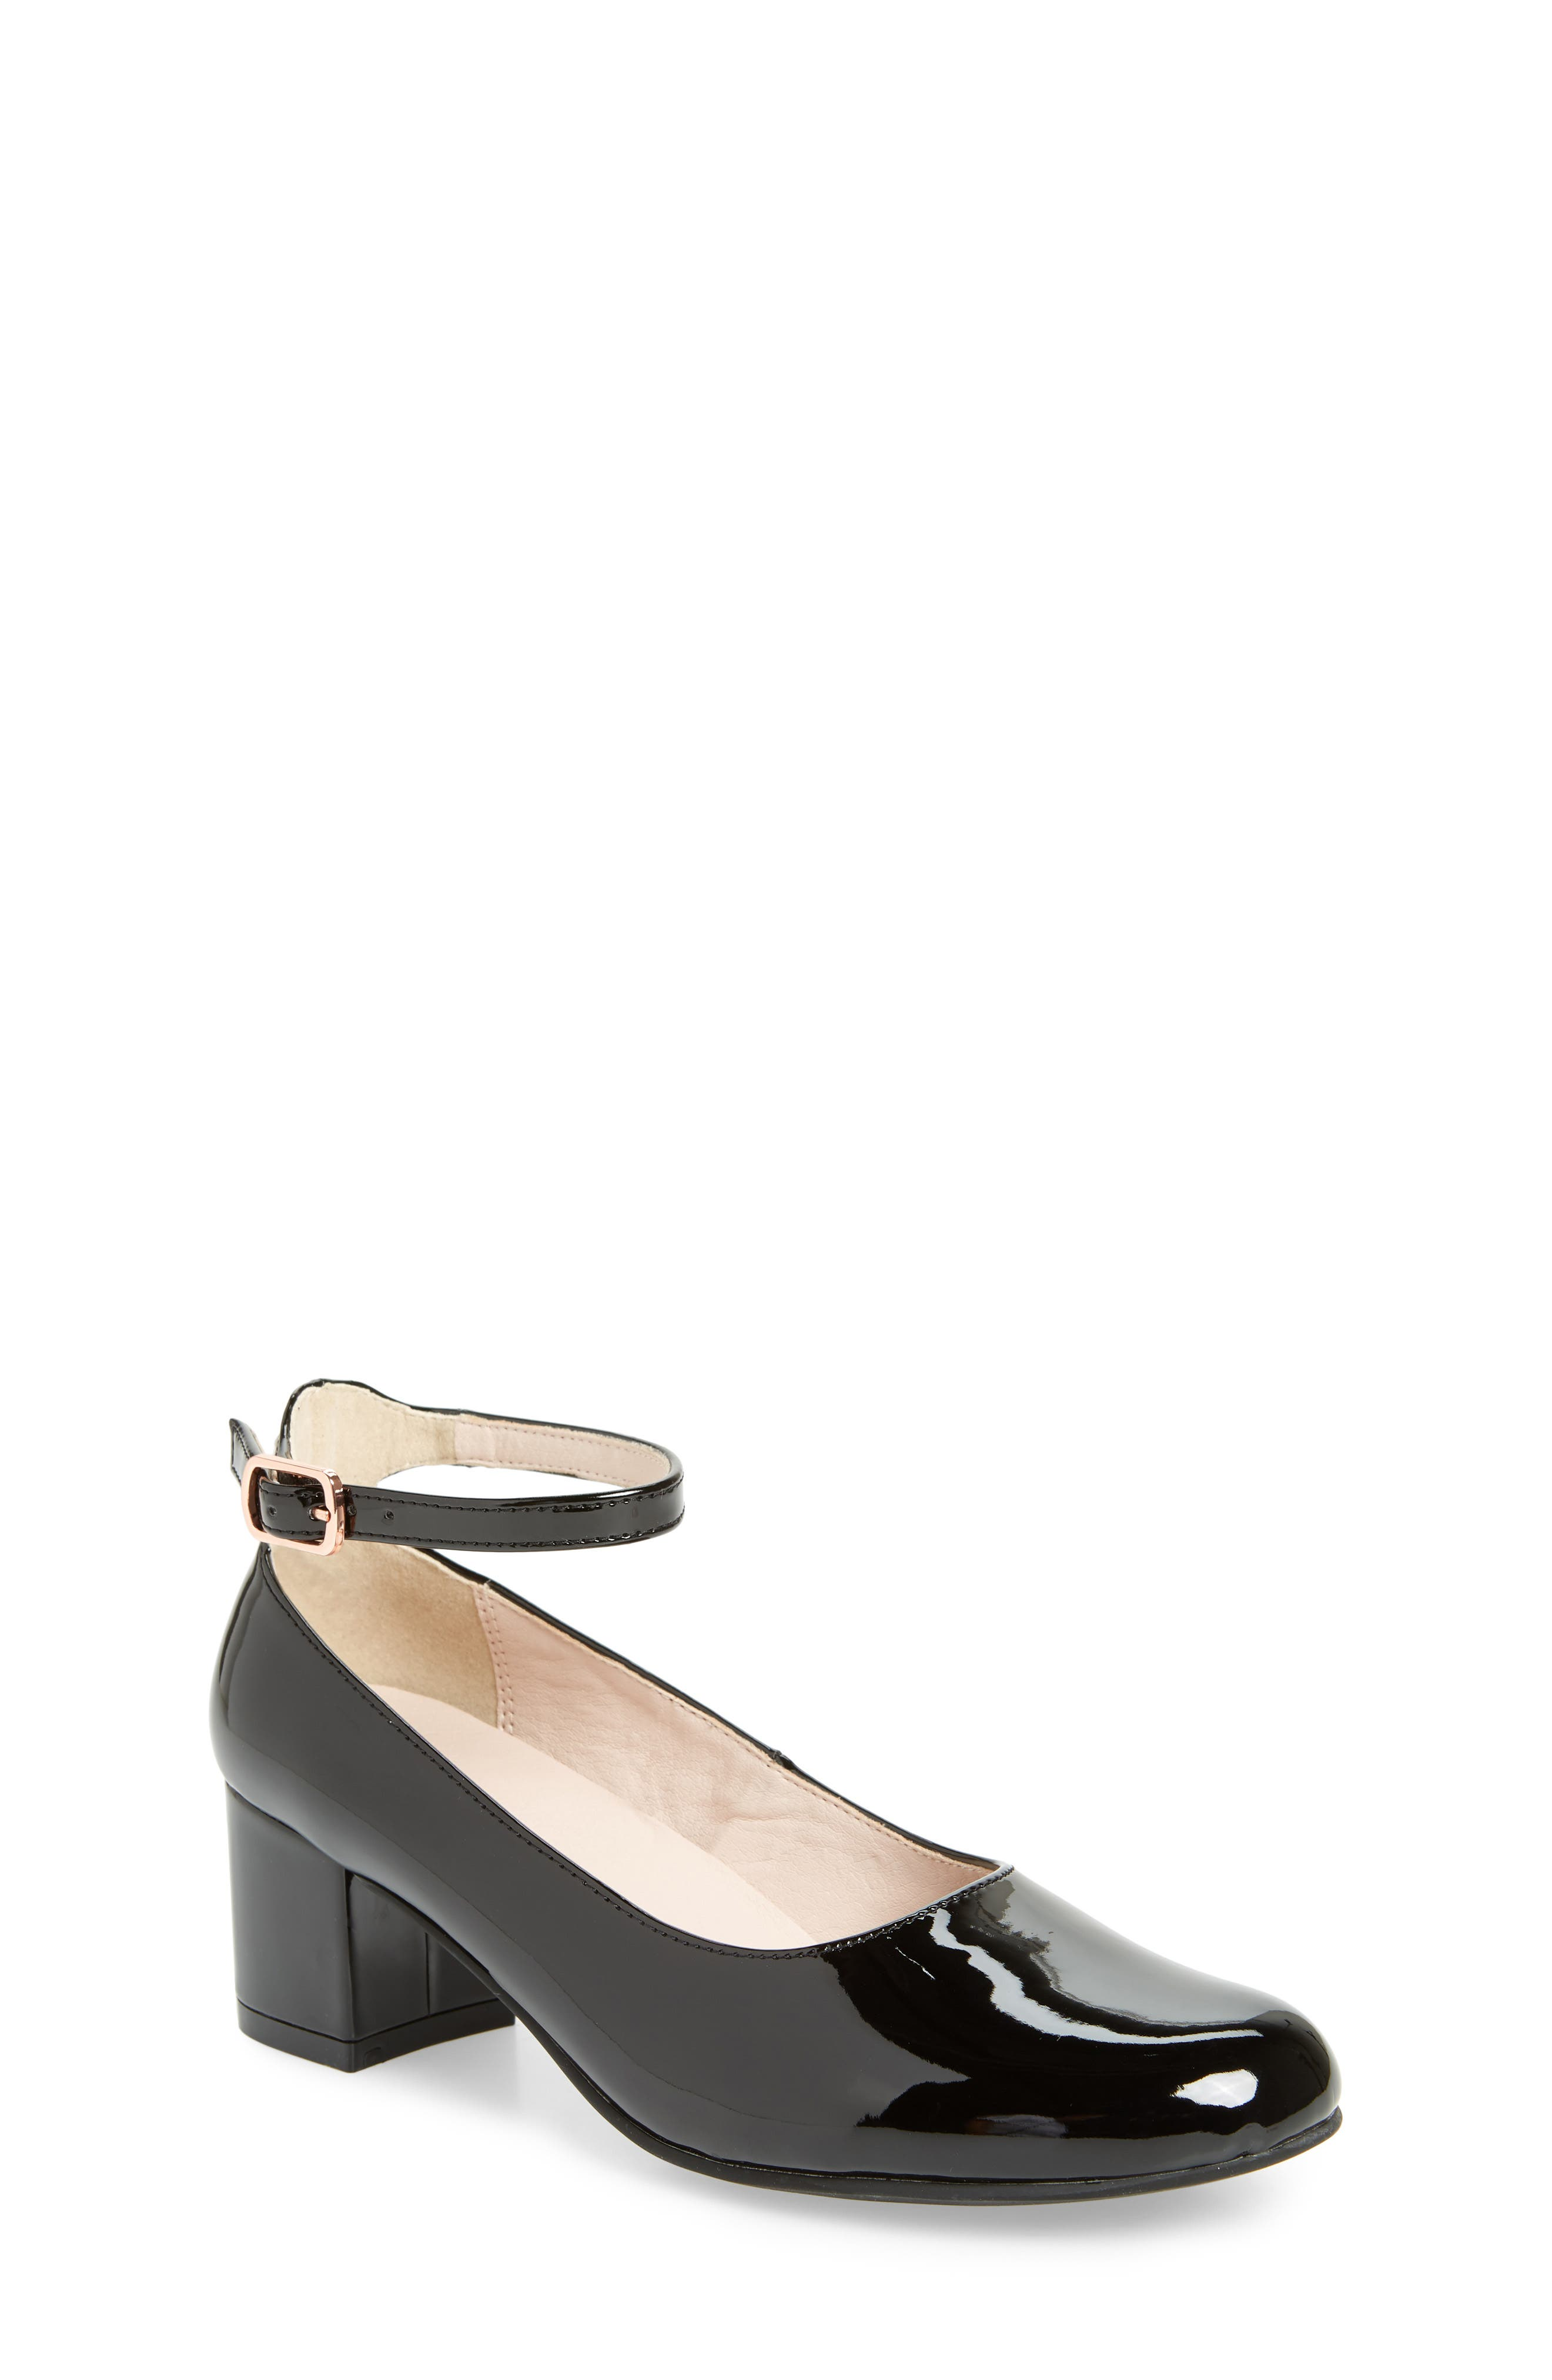 RUBY & BLOOM Jessica Ankle Strap Pump, Main, color, BLACK PATENT FAUX LEATHER